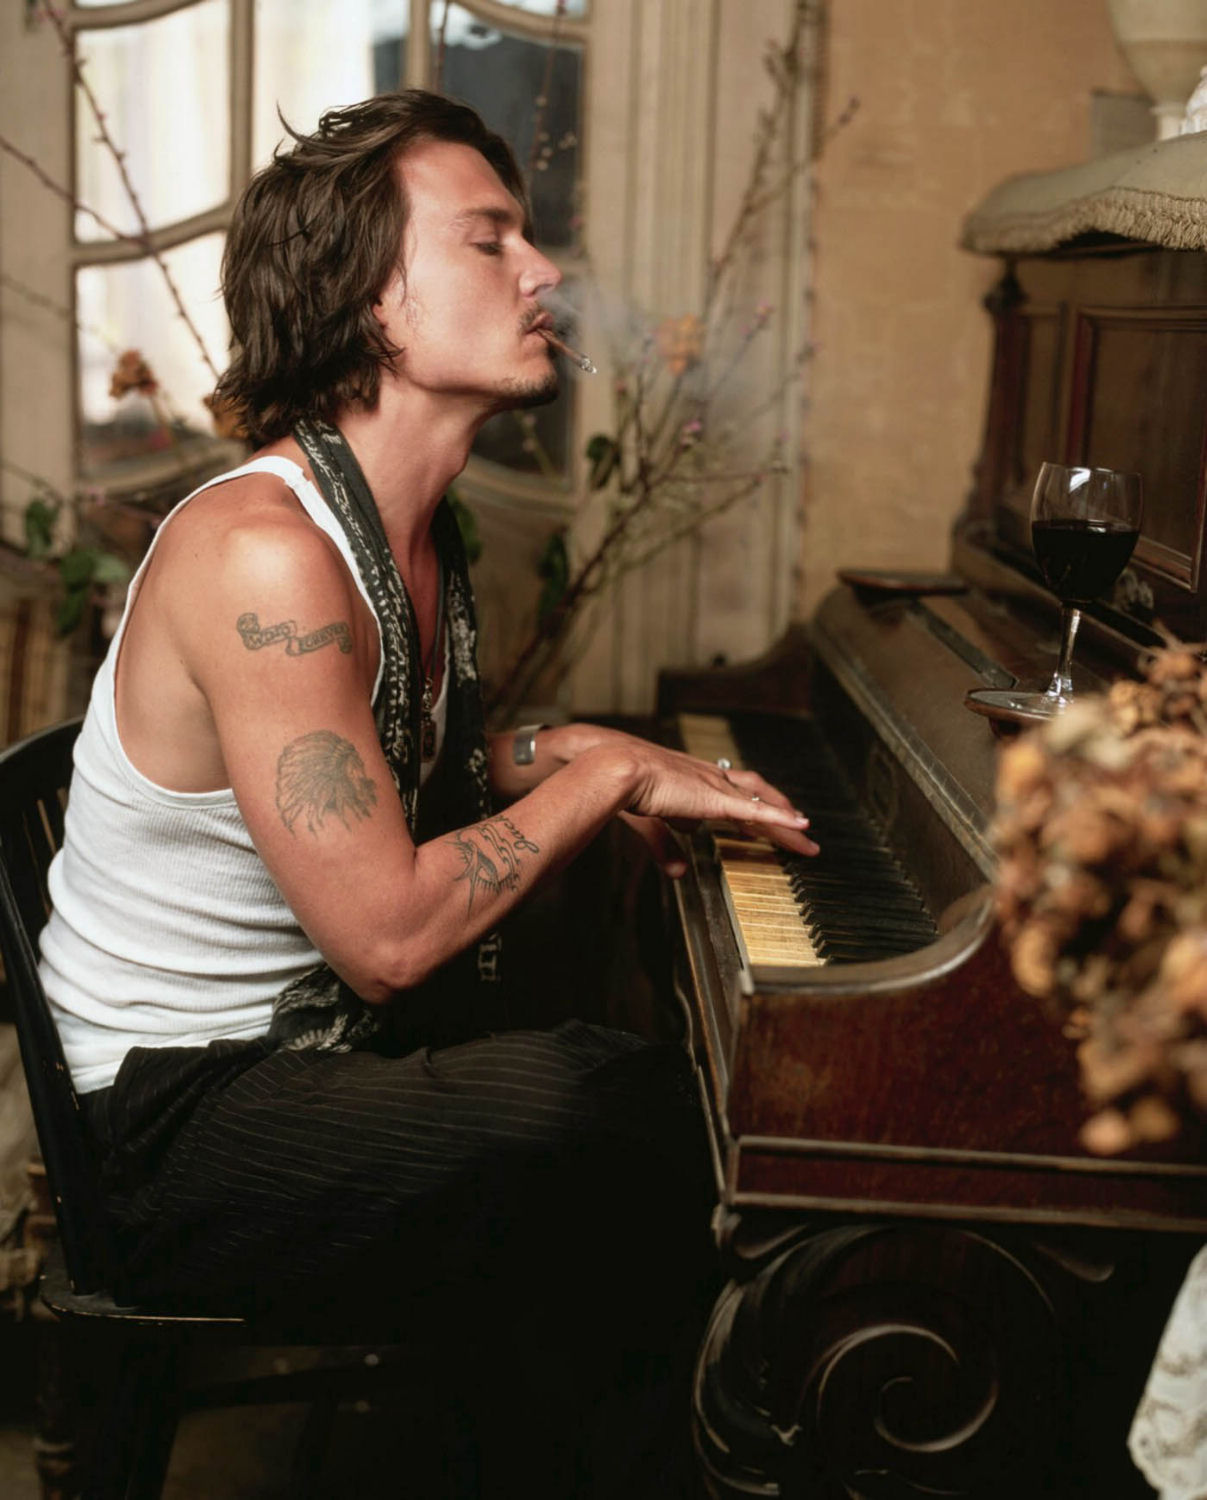 Johnny Depp Playing Piano